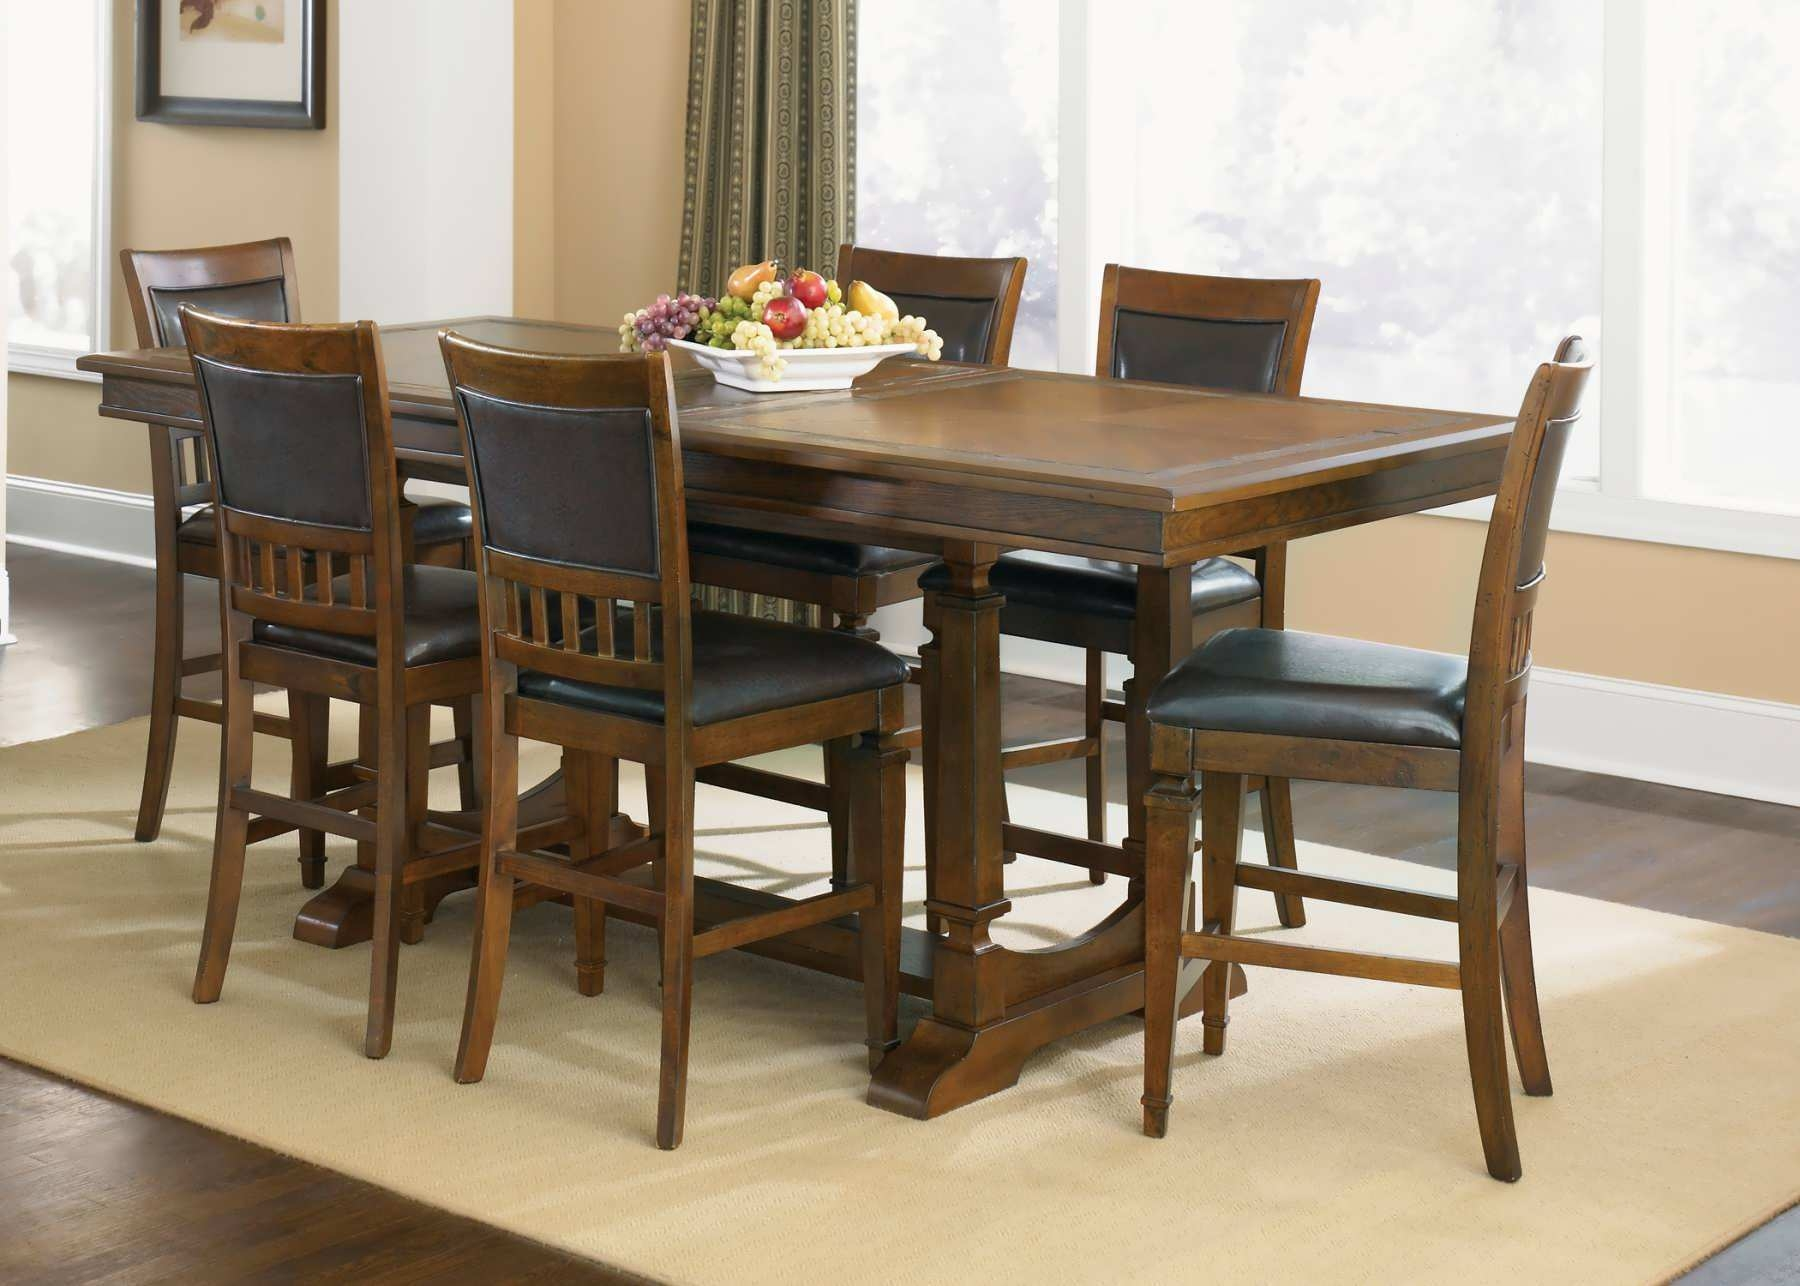 Amazon Dining Room Table And Chairs Grotly Within Dining Table With Sofa Chairs (Image 2 of 15)